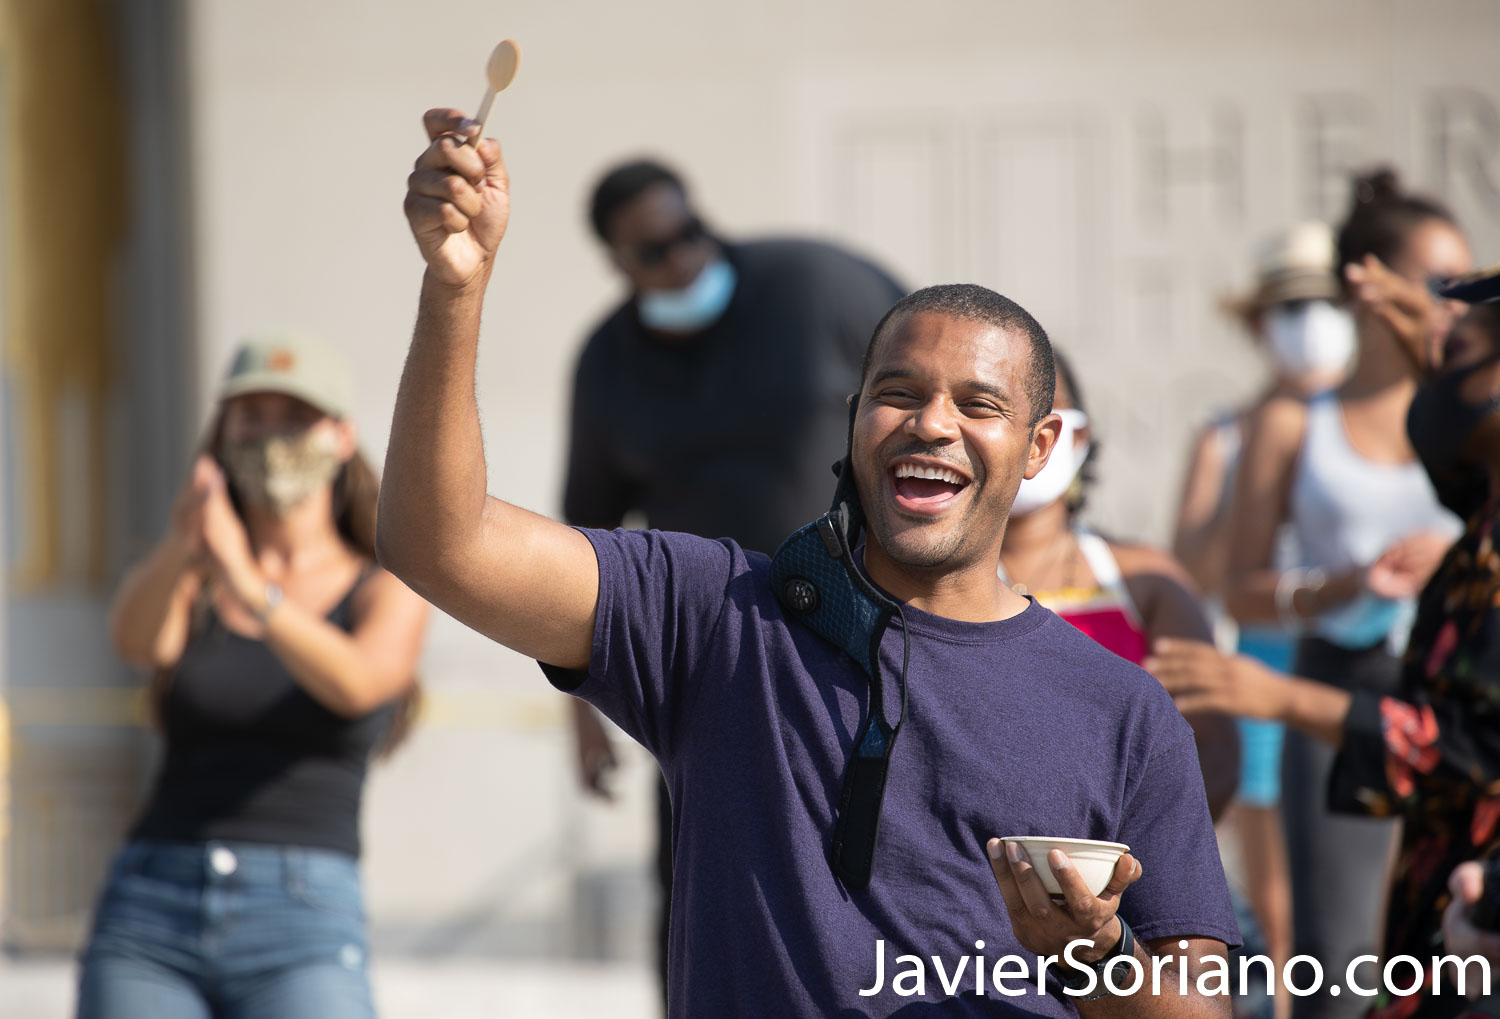 """Sunday, September 6, 2020. Brooklyn, New York City - """"Community Carnival"""" at Grand Army Plaza in Brooklyn. Jabari Brisport was one of the speakers today. Jabari Brisport will be the next New York State senator in District 25. Jabari Brisport will be the first openly gay Black New York state Senator. In this photo, Jabari is dancing, enjoying some ice cream and having a good time. The Wide Awakes and Large Up said: """"We celebrate and honor the beauty and brilliance of Caribbean culture. As many of you all know, due to COVID-19, the annual West Indian Day parade is going virtual this year. With love and in solidarity, The Wide Awakes and Large Up are excited to amplify the voices of our Caribbean brothers and sisters with a fun filled day of unity and empowerment."""" Photo by Javier Soriano/www.JavierSoriano.com"""